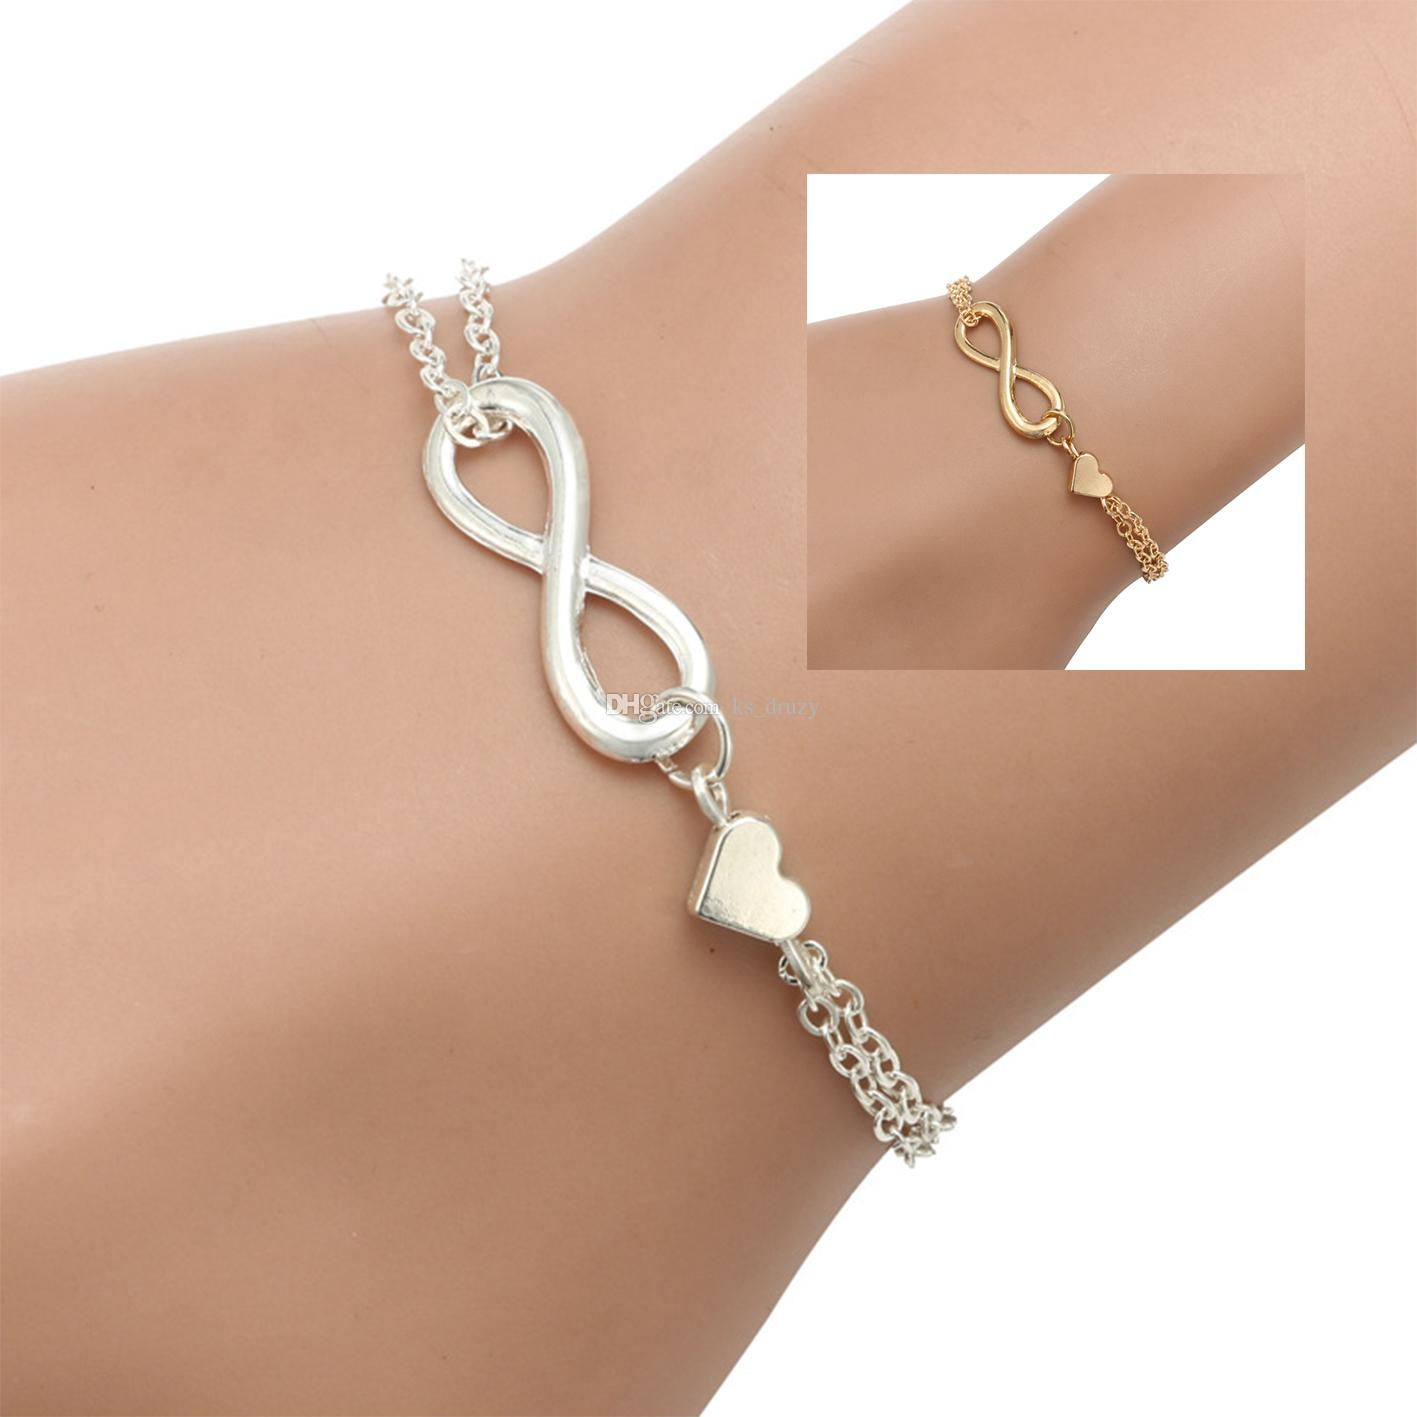 d4d25e80ffb95 Fashion Silver Gold Plated Infinity Charms Bracelets for Women Lover Heart  Cheap Jewelry Party Good Gift